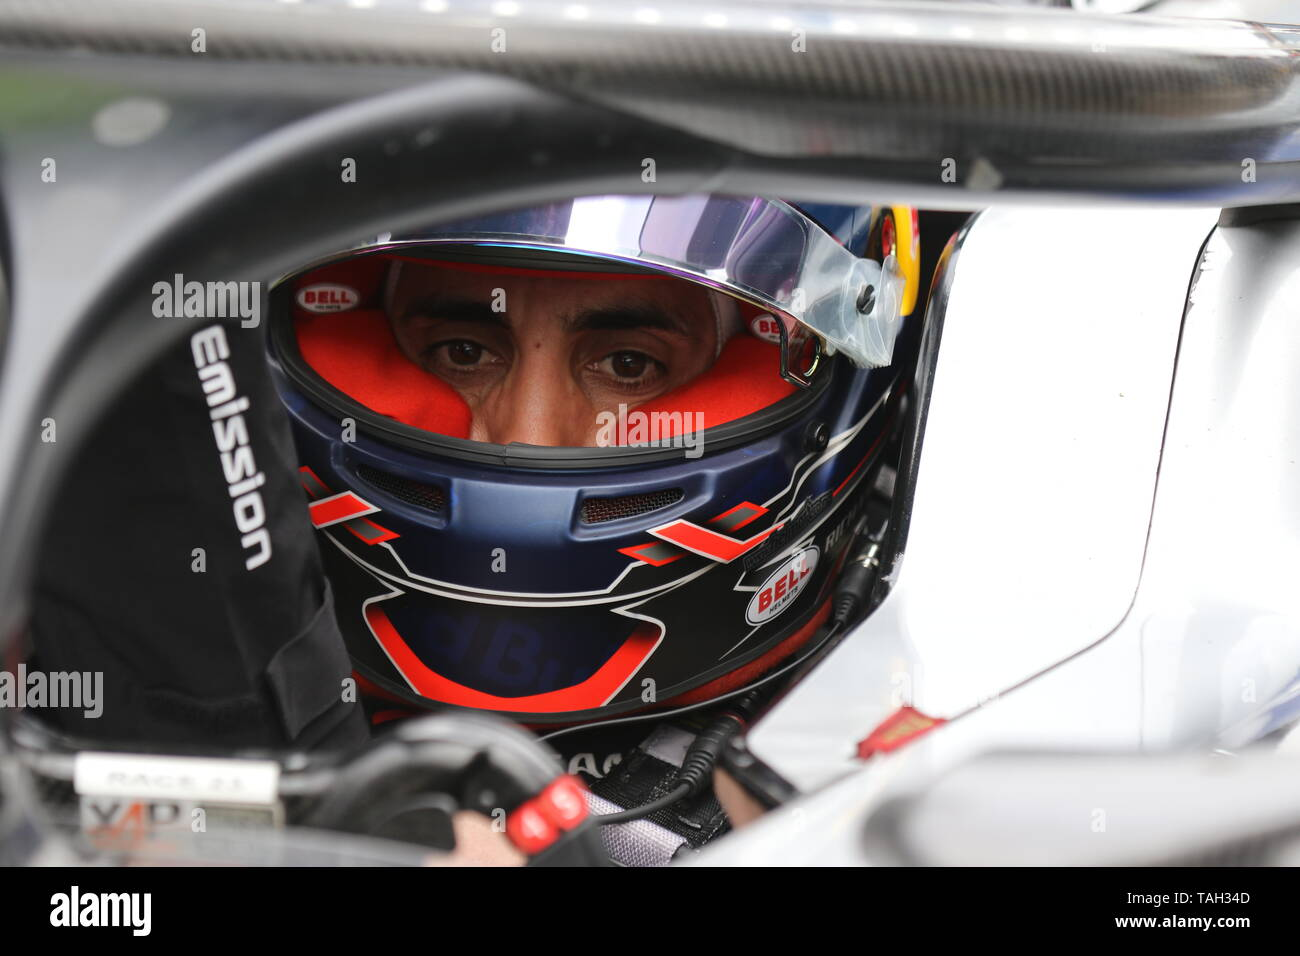 25.05.2019, Berlin, Germany.Sébastien Buemi at the grid. Lucas Di Grassi from the Audi Sport Abt Schaeffler team wins the Berlin ePrix. Sébastien Buemi from the team Nissan e.dams wins the second place and Jean-Eric Vergne from the team DS TECHEETAH wins the third place. The Formula E will be on the 25th of May 2019 for the fifth time in Berlin. The electric racing series 2018/2018 will take place at the former Tempelhof Airport. - Stock Image